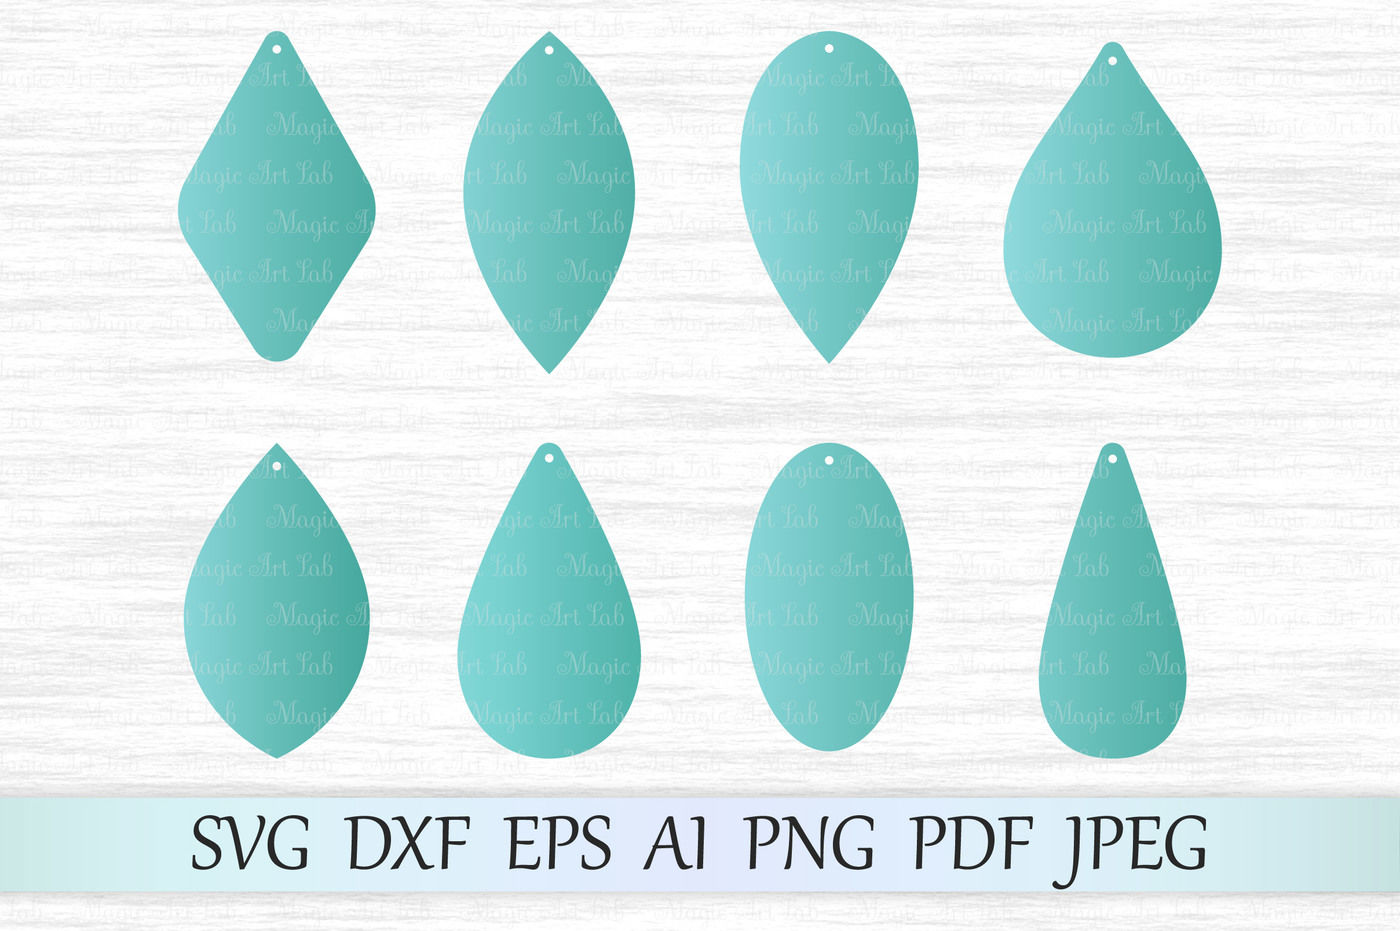 Earring Template Svg Dxf Eps Ai Png Pdf Jpeg By Magicartlab